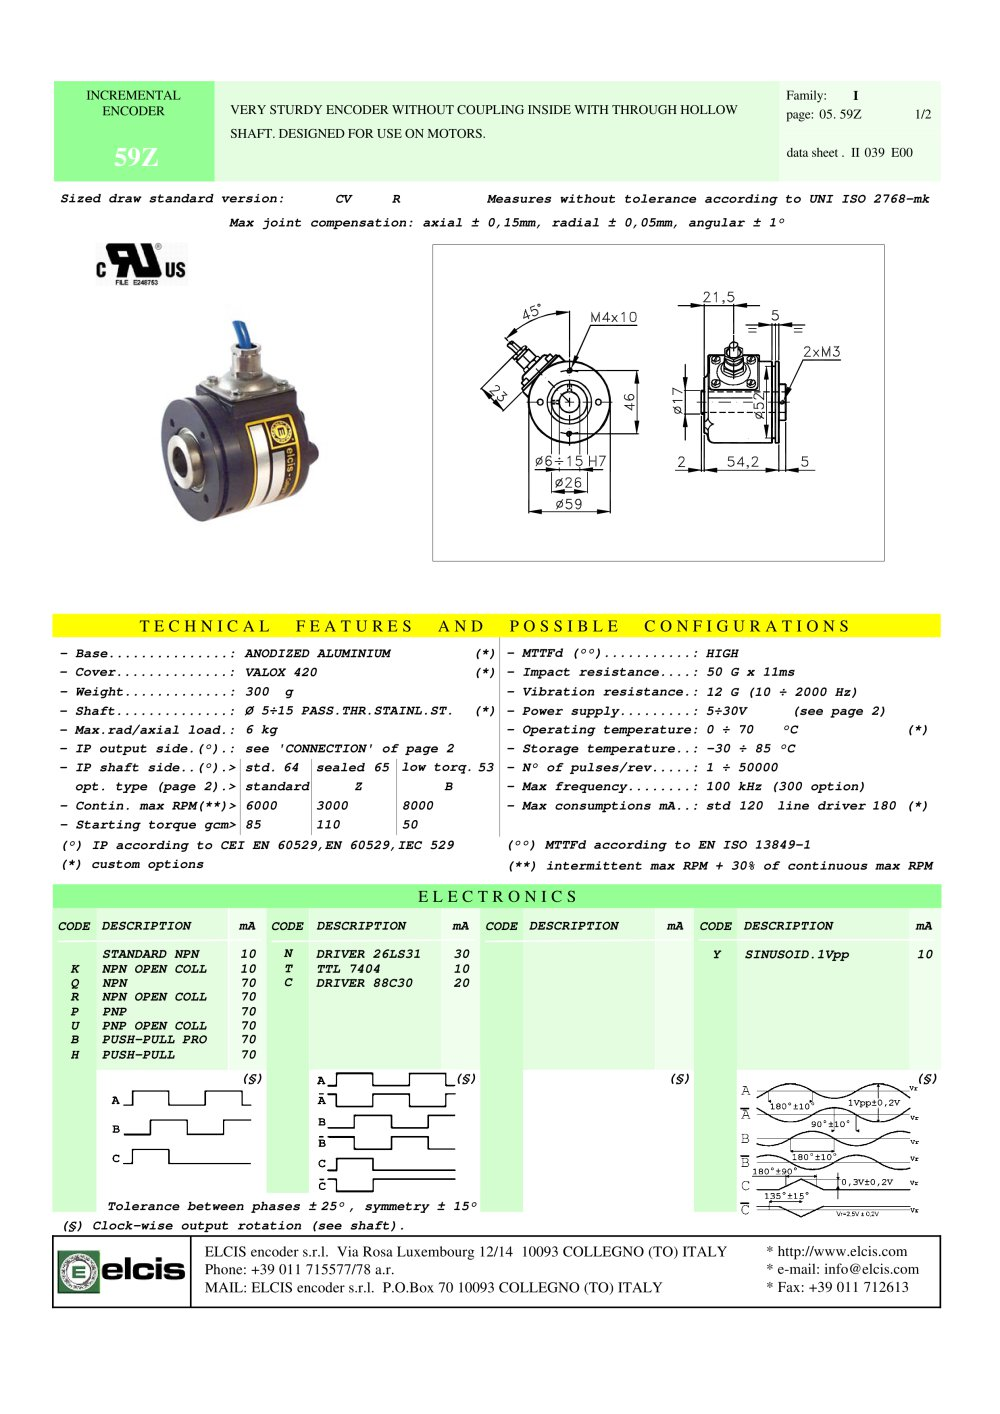 INCREMENTAL ENCODER 59Z - 1 / 2 Pages